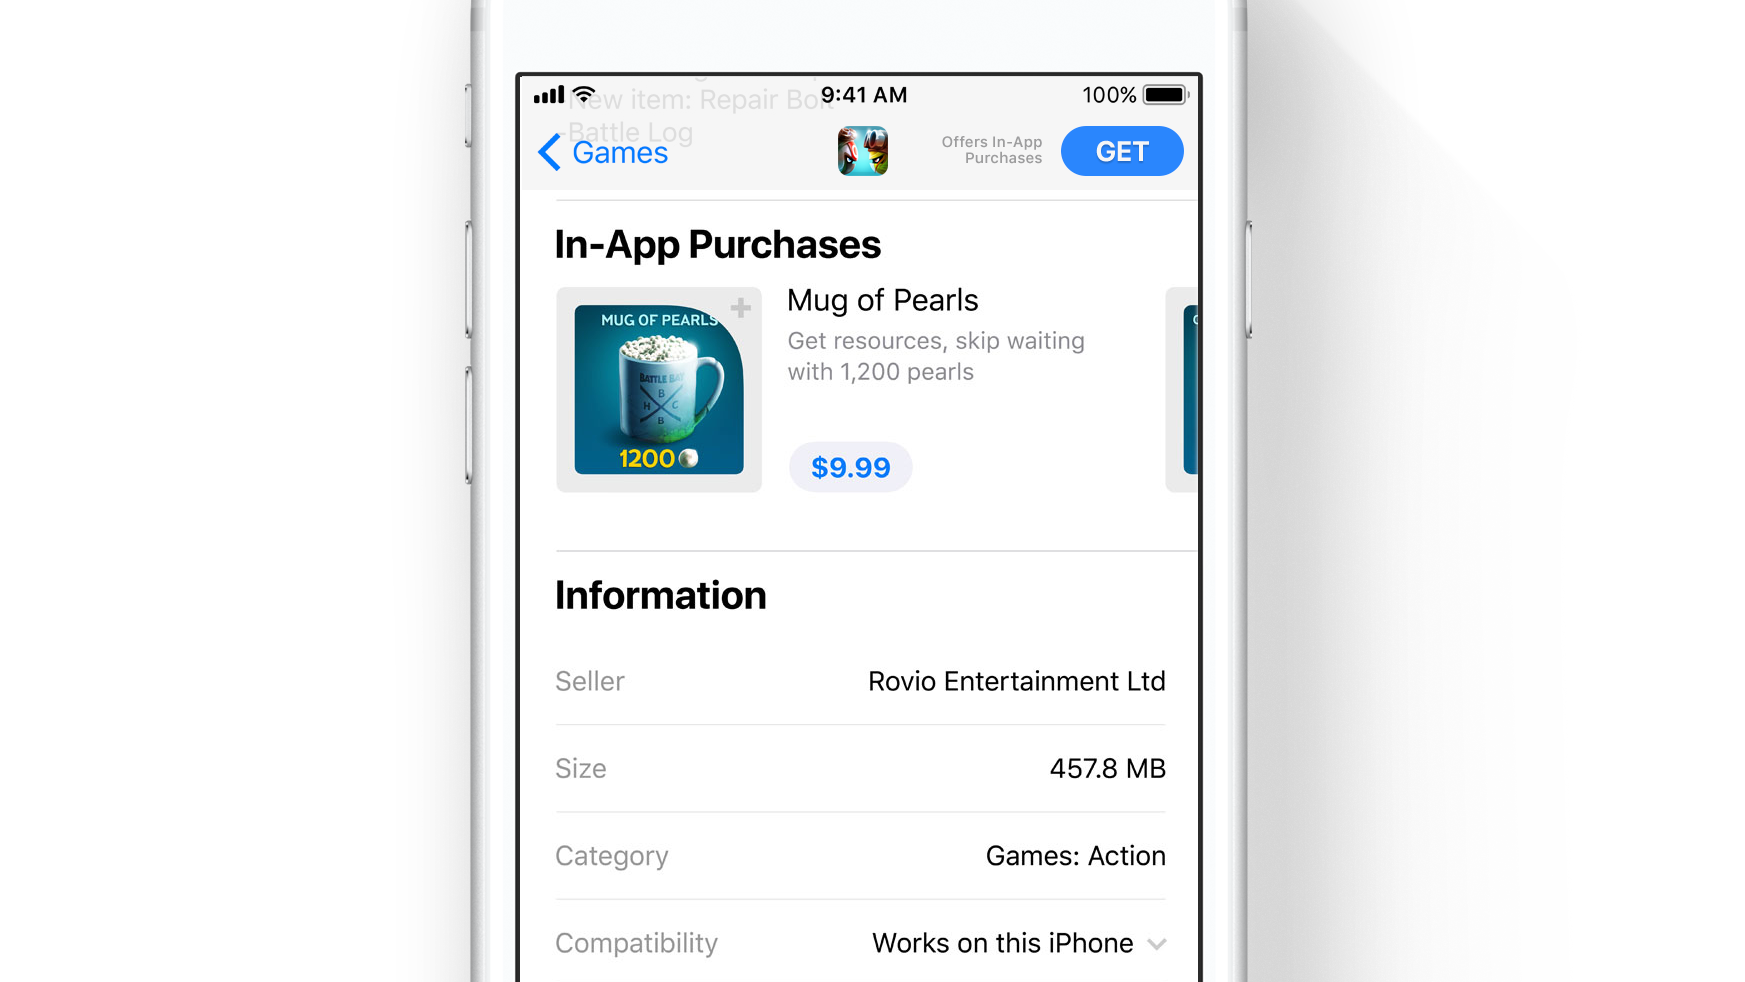 How To Find Out If An iPhone App Has Extra 'In-App' Purchases